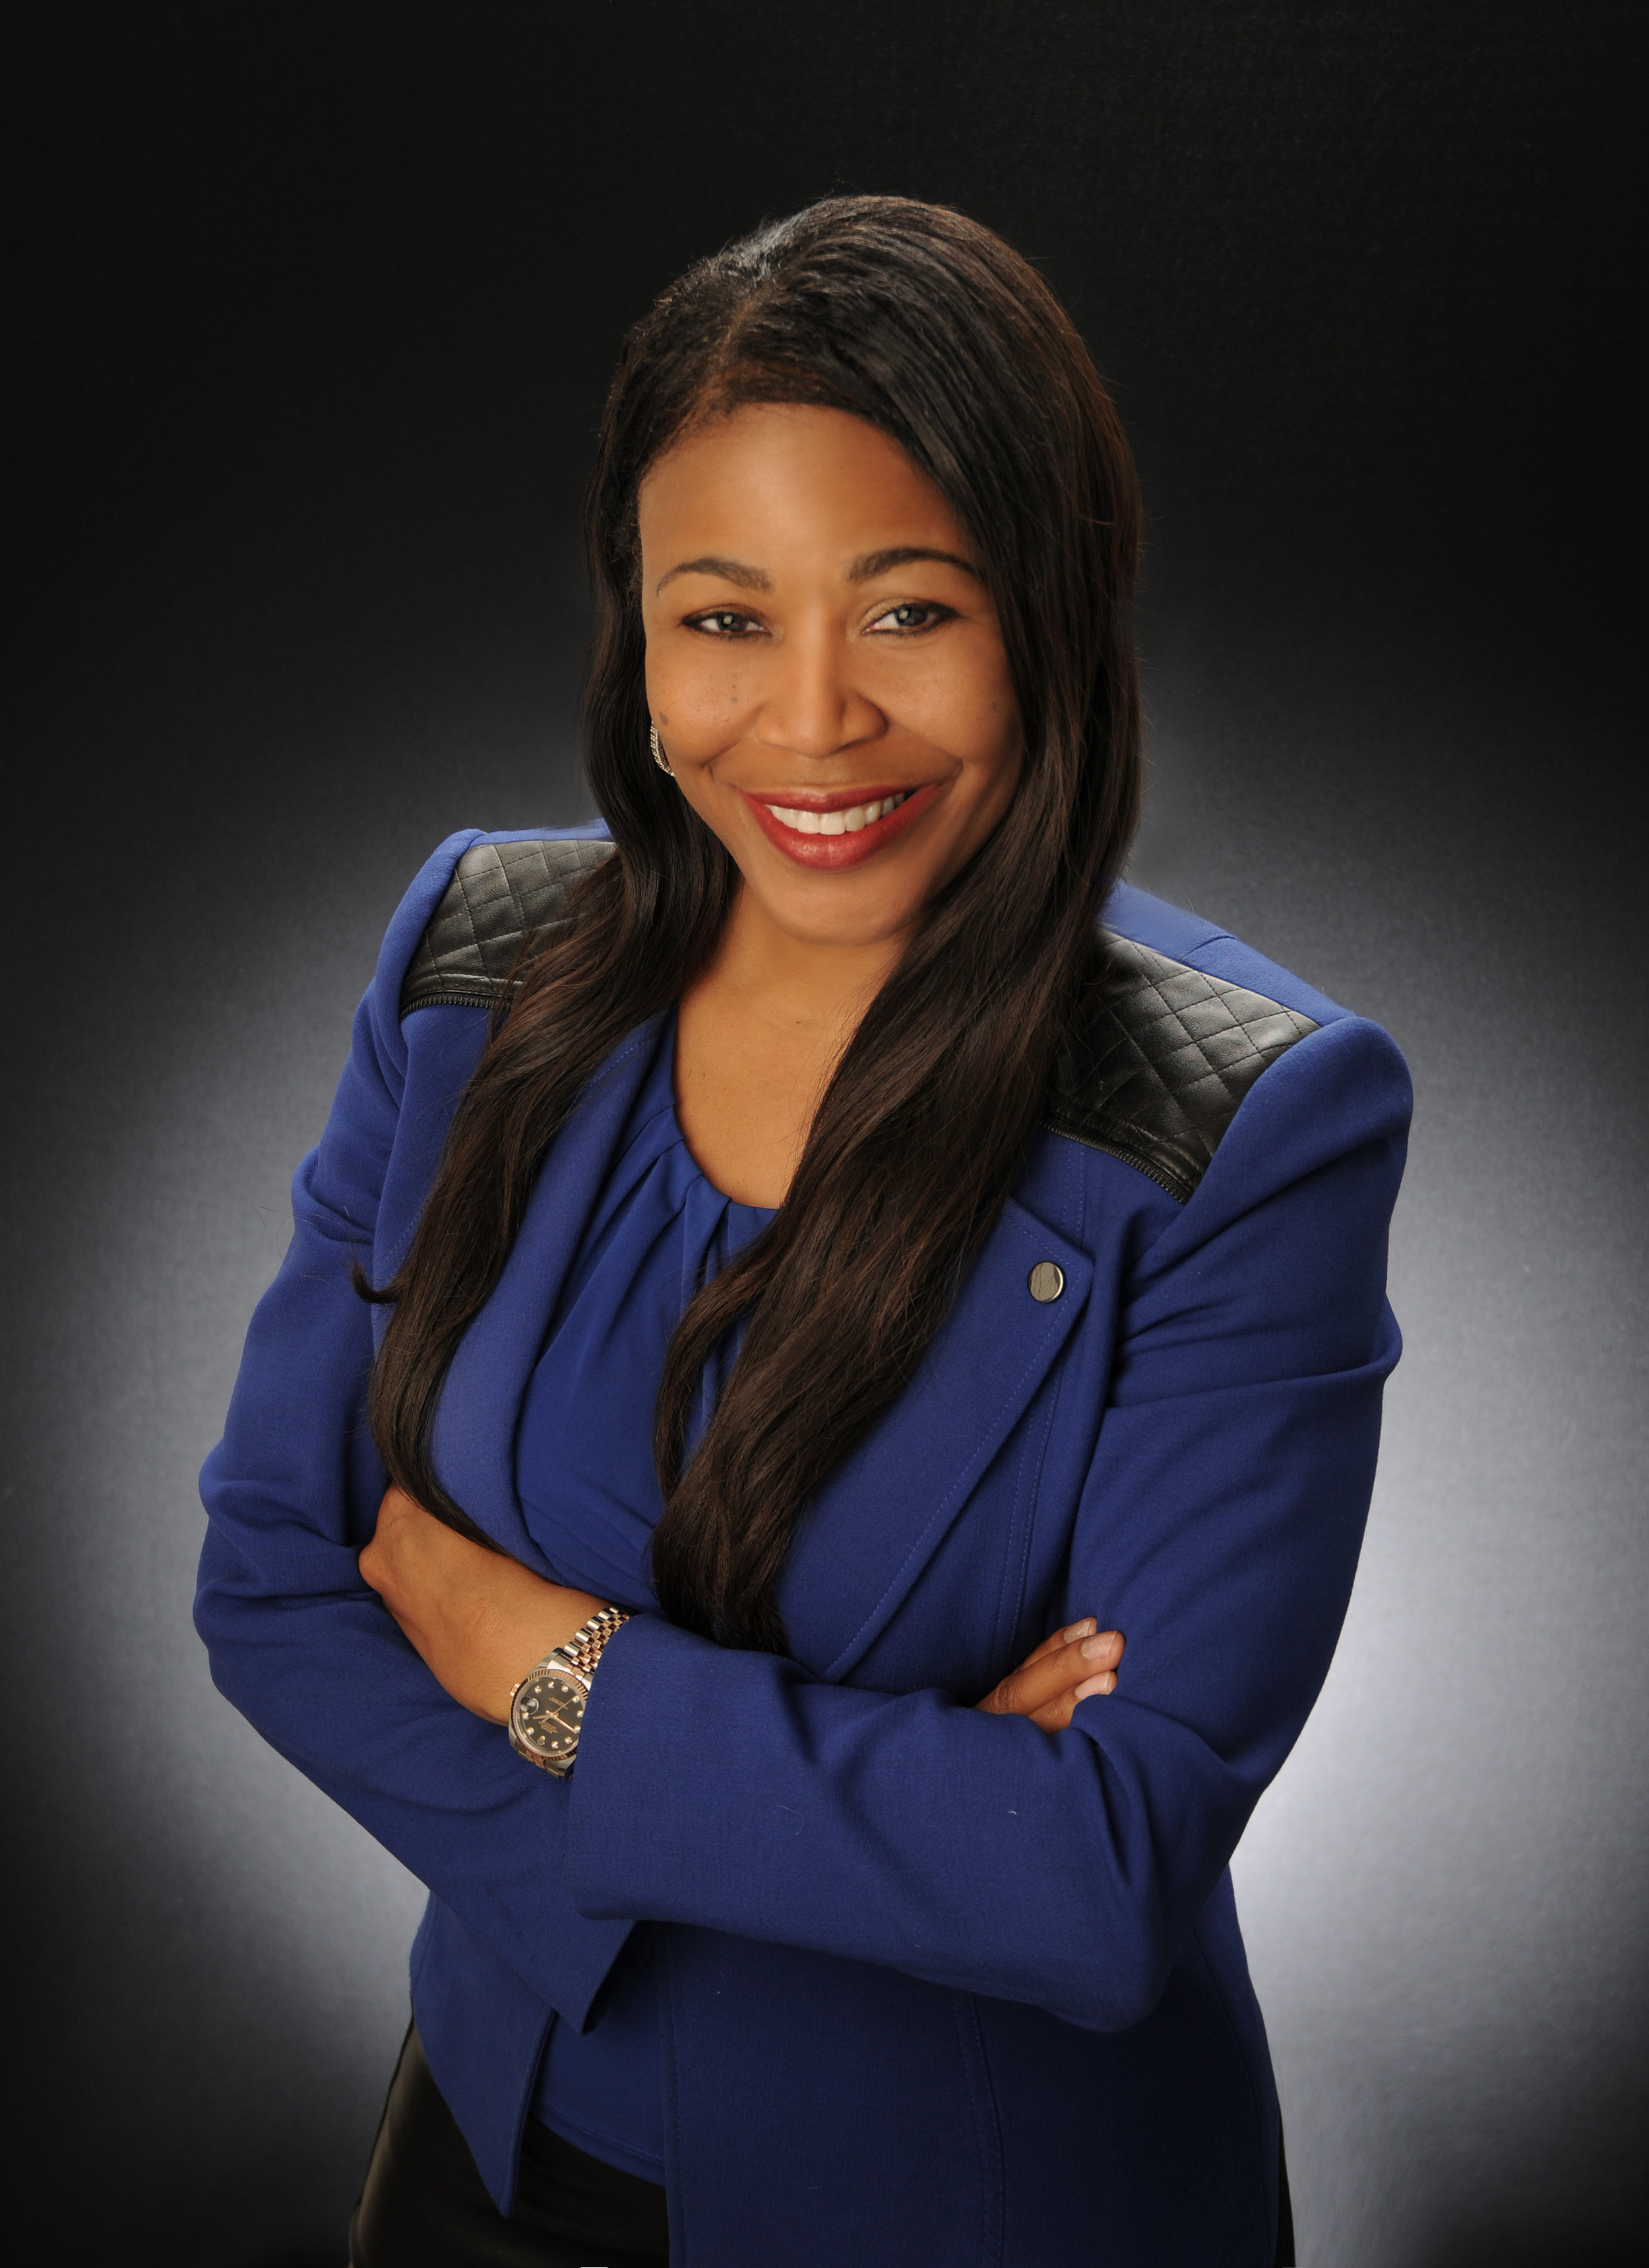 Cheryl Abrams, President of the Prince George's County Association of Realtors